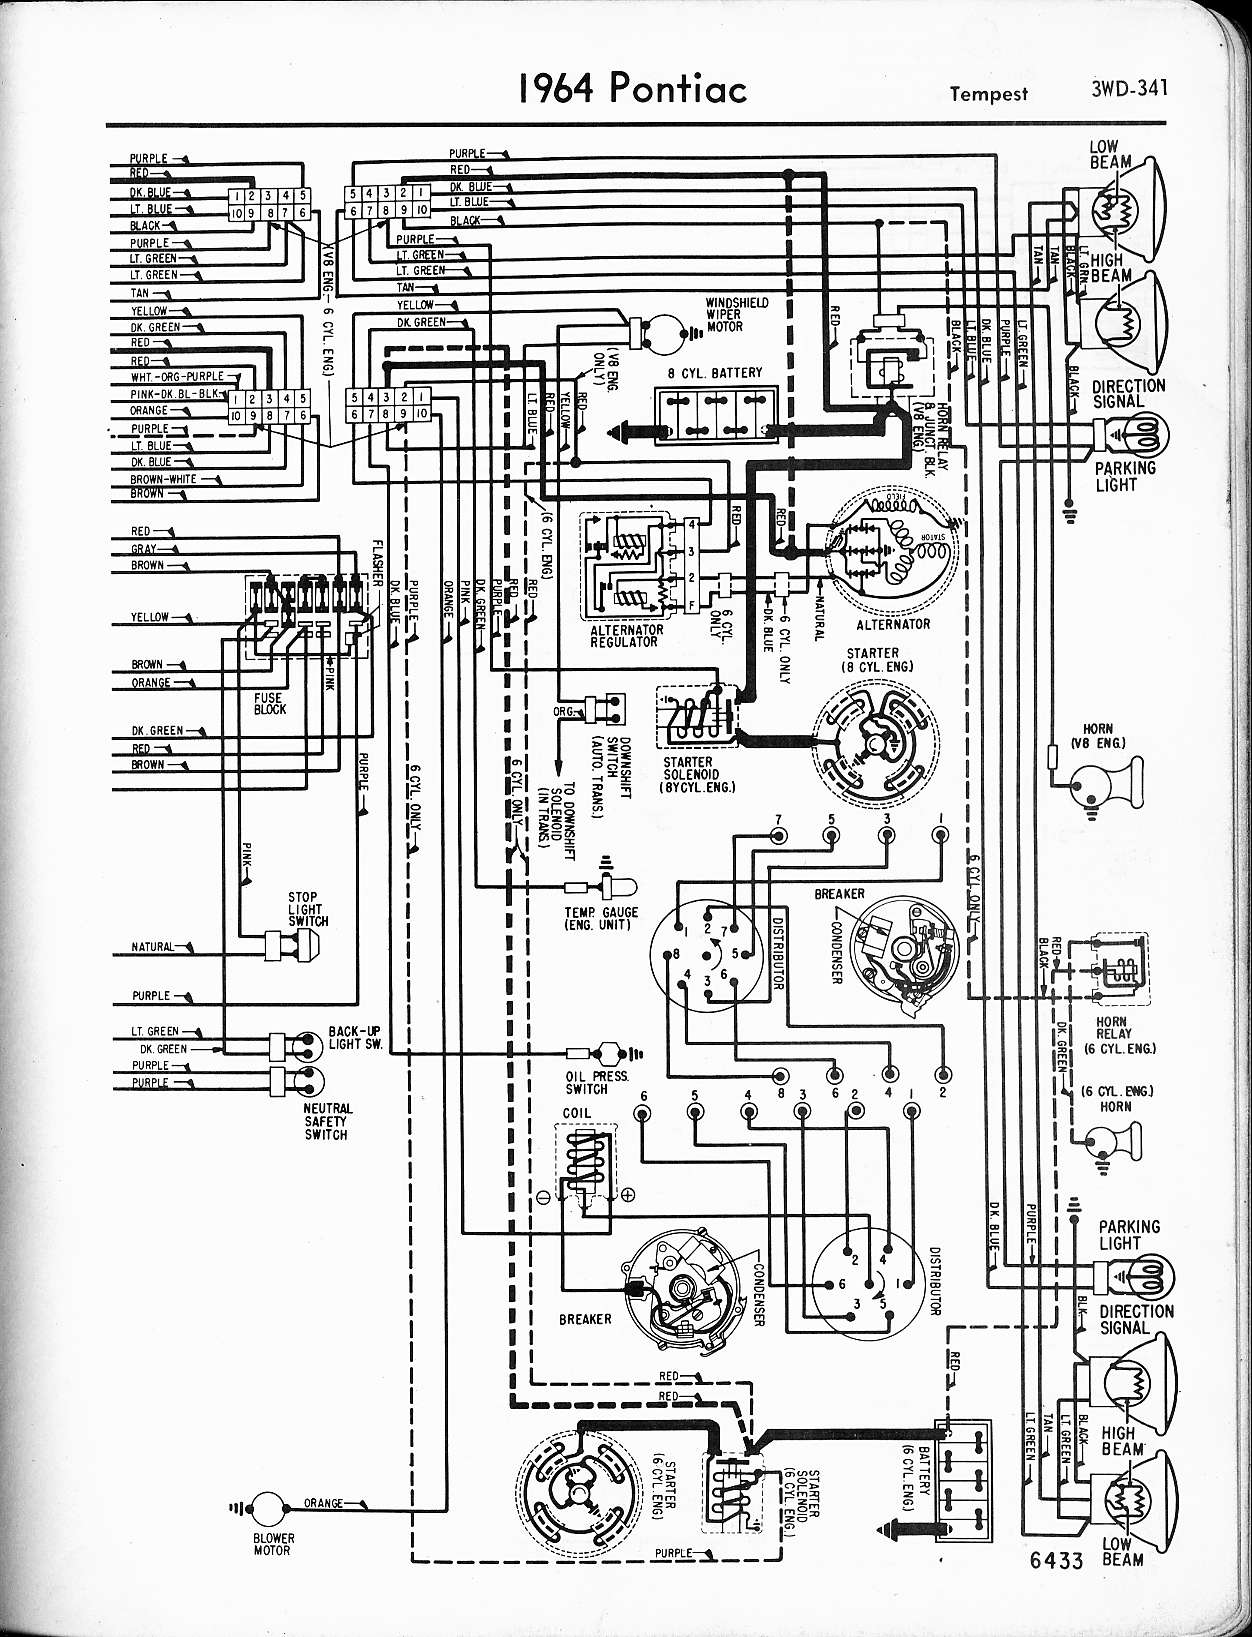 Wallace racing wiring diagrams rh wallaceracing 1966 gto wiring diagram 1966 pontiac catalina wiring diagram